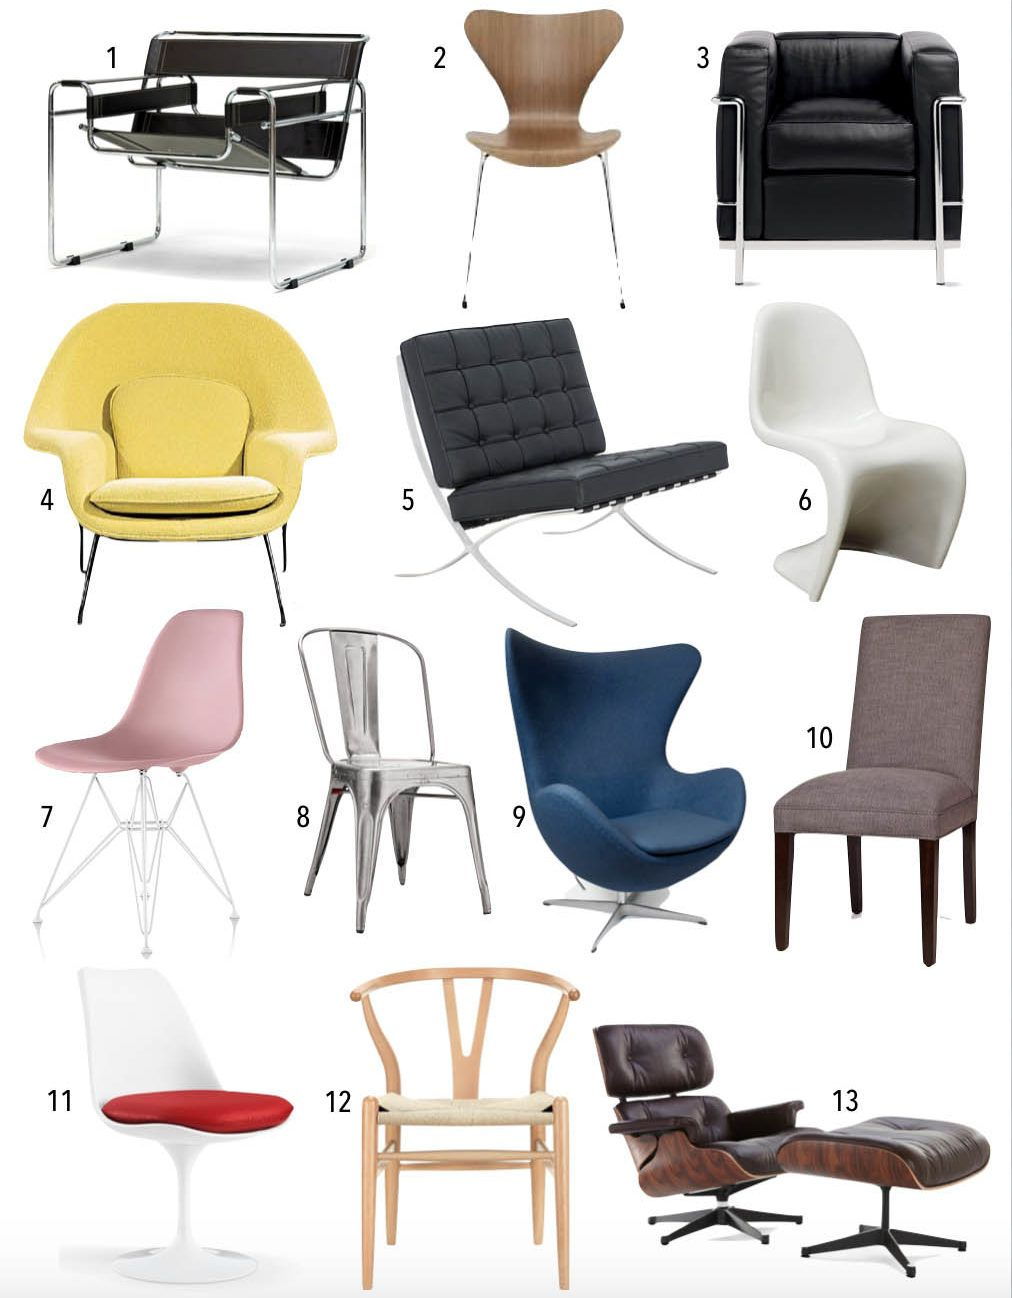 20th Century Chairs Can You Identify 13 Of The Most Famous 20th Century Chair Designs Ta Iconic Furniture Design Furniture Design Chair Famous Chair Designs